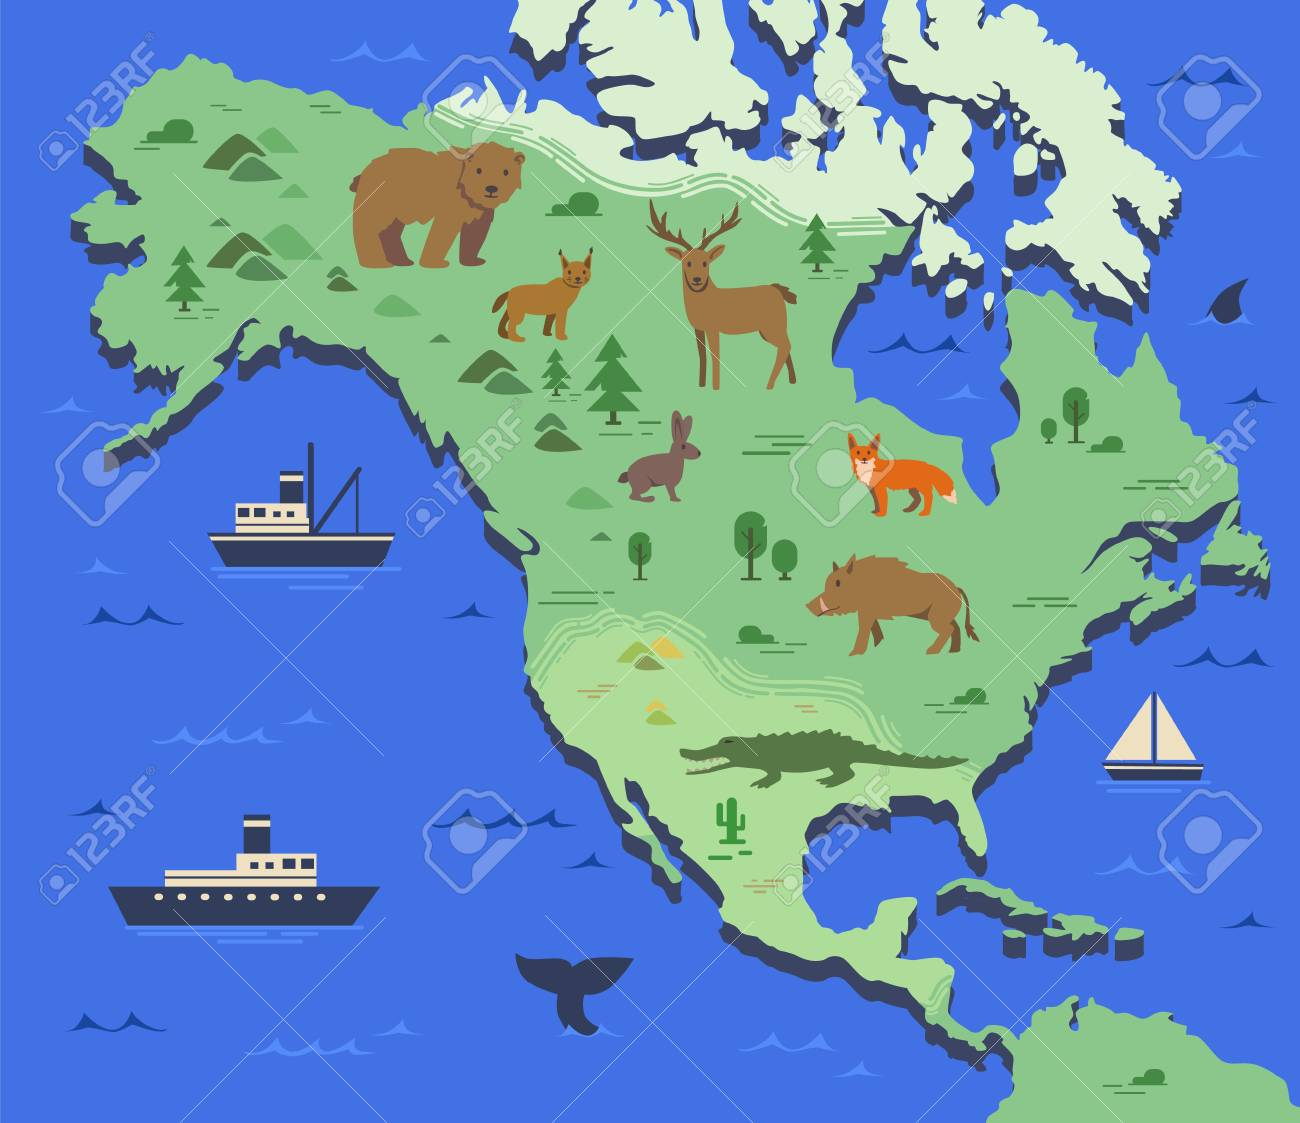 Indigenous Map Of North America.Stylized Map Of North America With Indigenous Animals And Nature